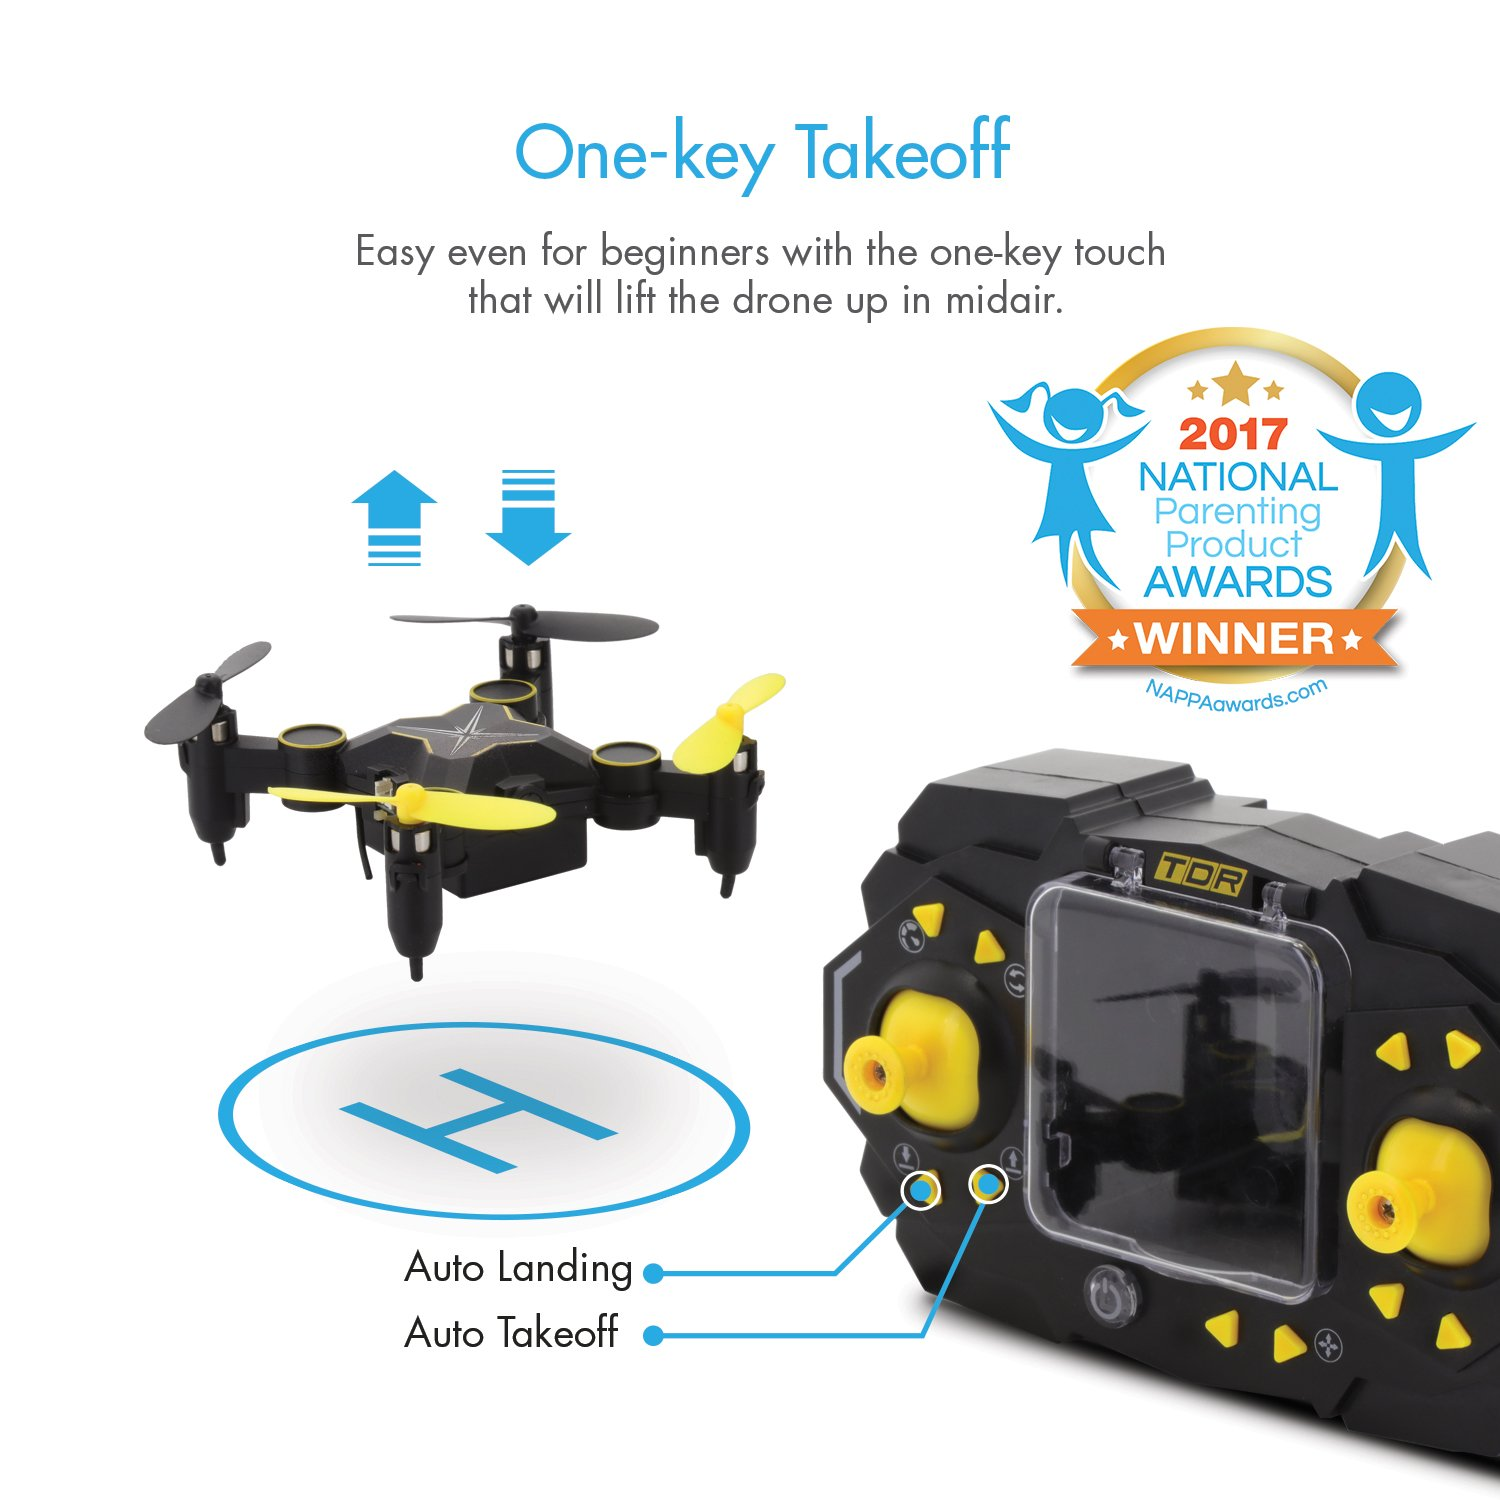 Tenergy Tdr Sky Beetle Quadcopter Drone With Camera Live And Are More Functional Than A Basic 4 Or 5 Channel Rc Transmitter Video Mini 24ghz 6 Axis Gyro Wifi Fpv App Controlled Docking